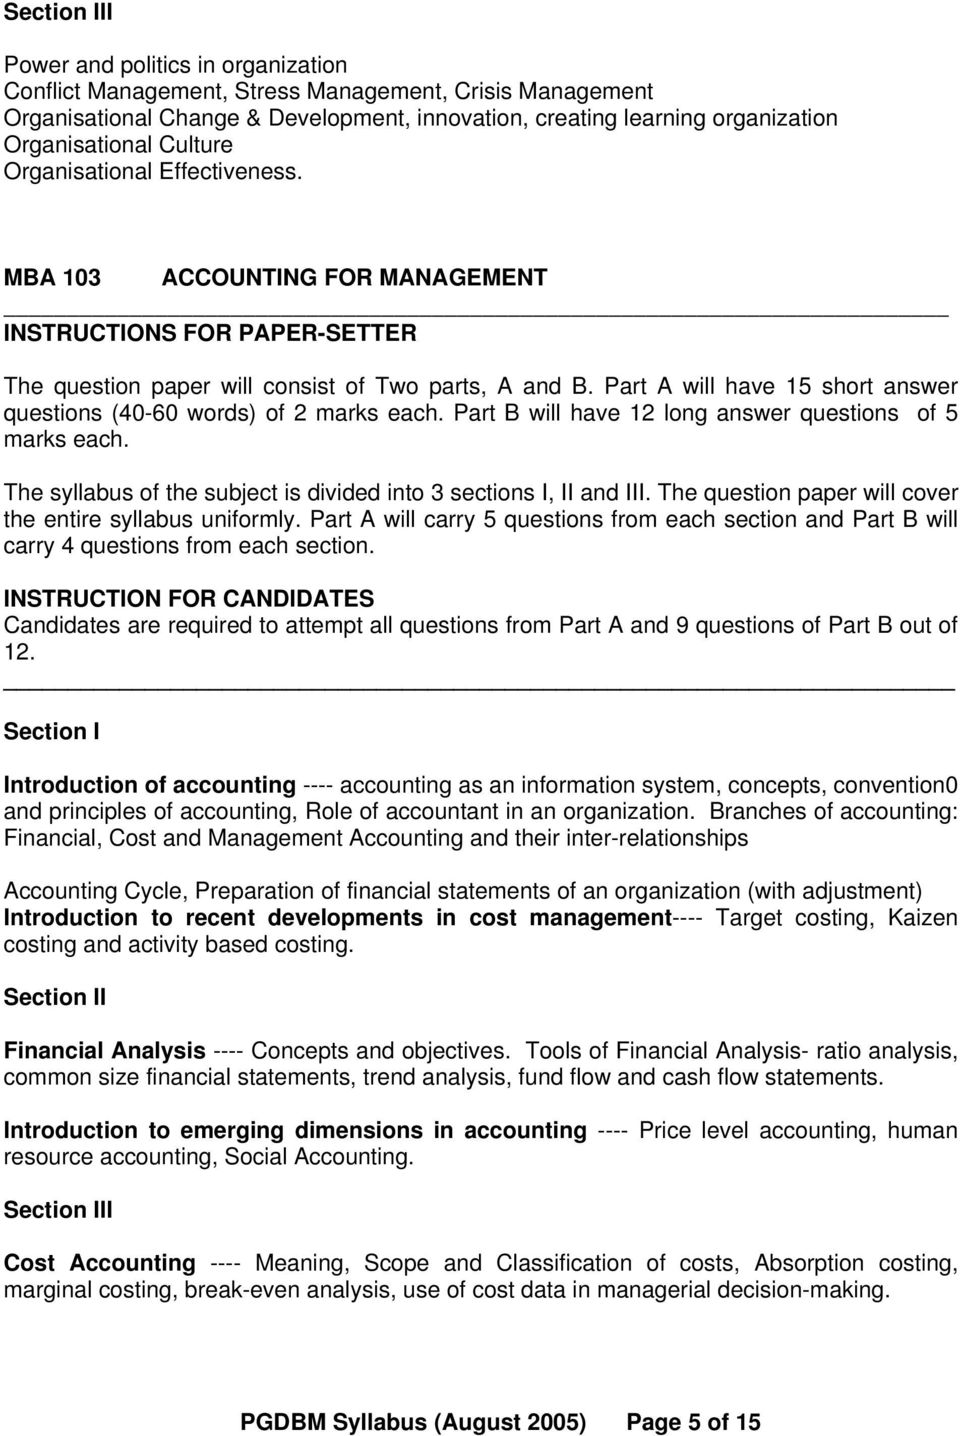 MBA 103 ACCOUNTING FOR MANAGEMENT questions (40-60 words) of 2 Part B will have 12 long answer questions of 5 Introduction of accounting ---- accounting as an information system, concepts,